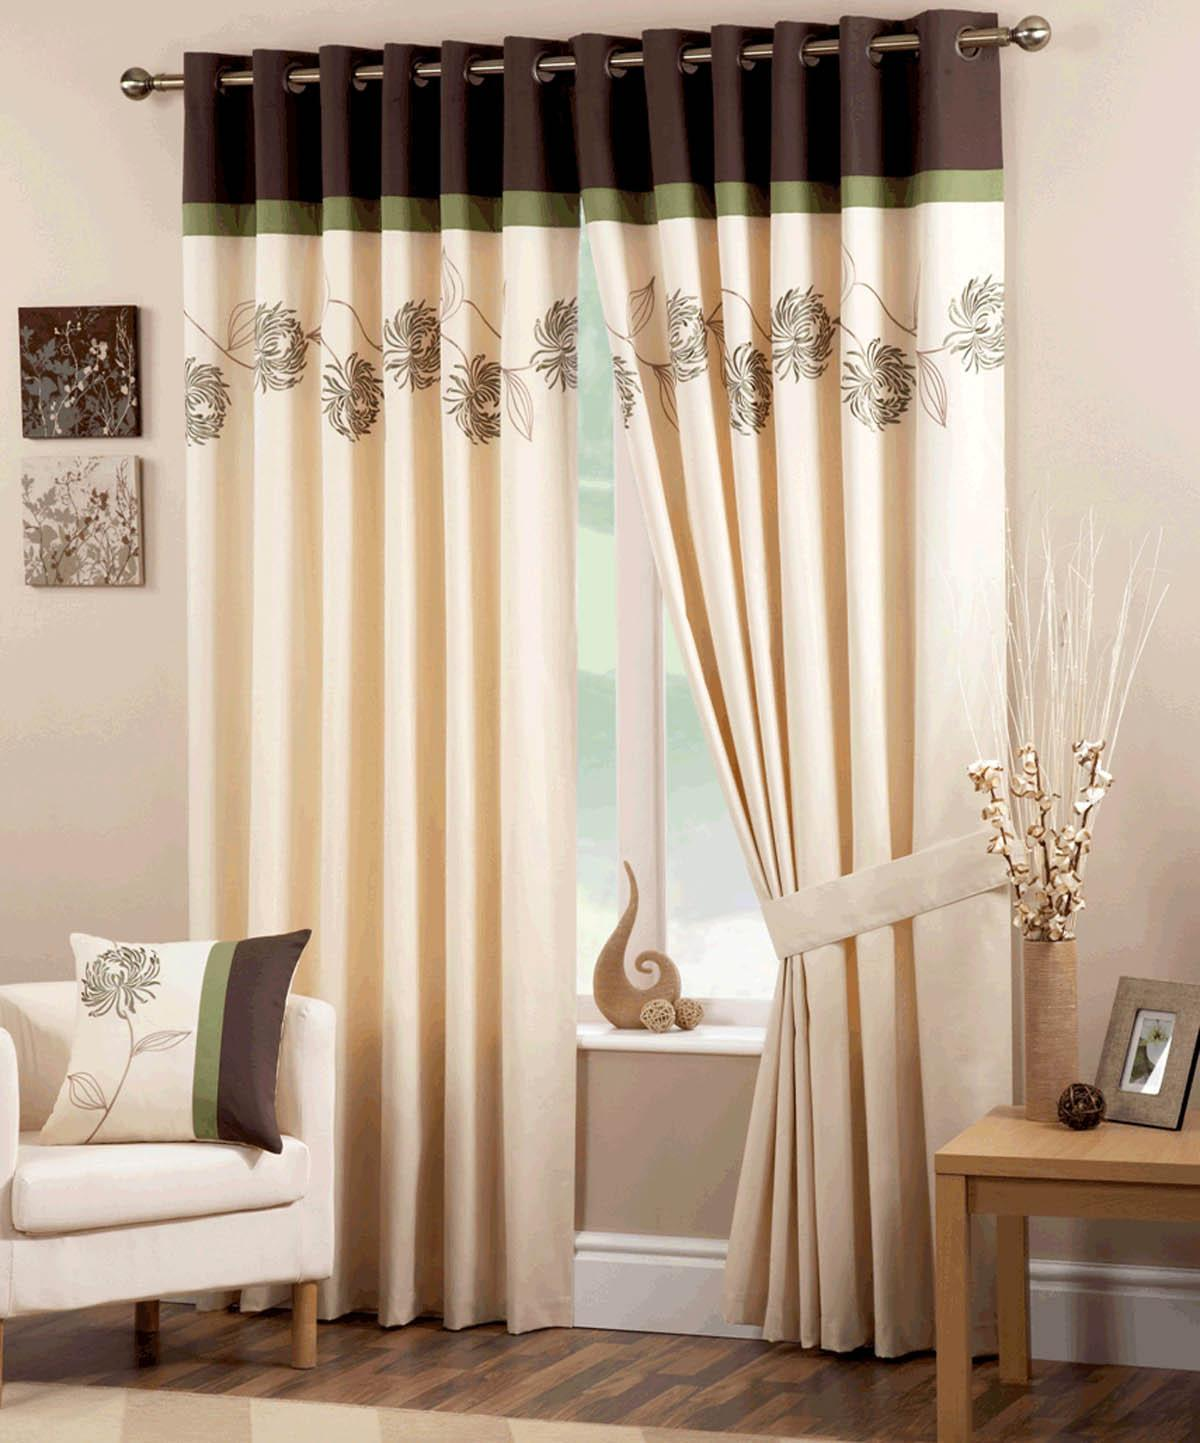 Lincraft Curtain Rods Making Lined Eyelet Curtains Instructions